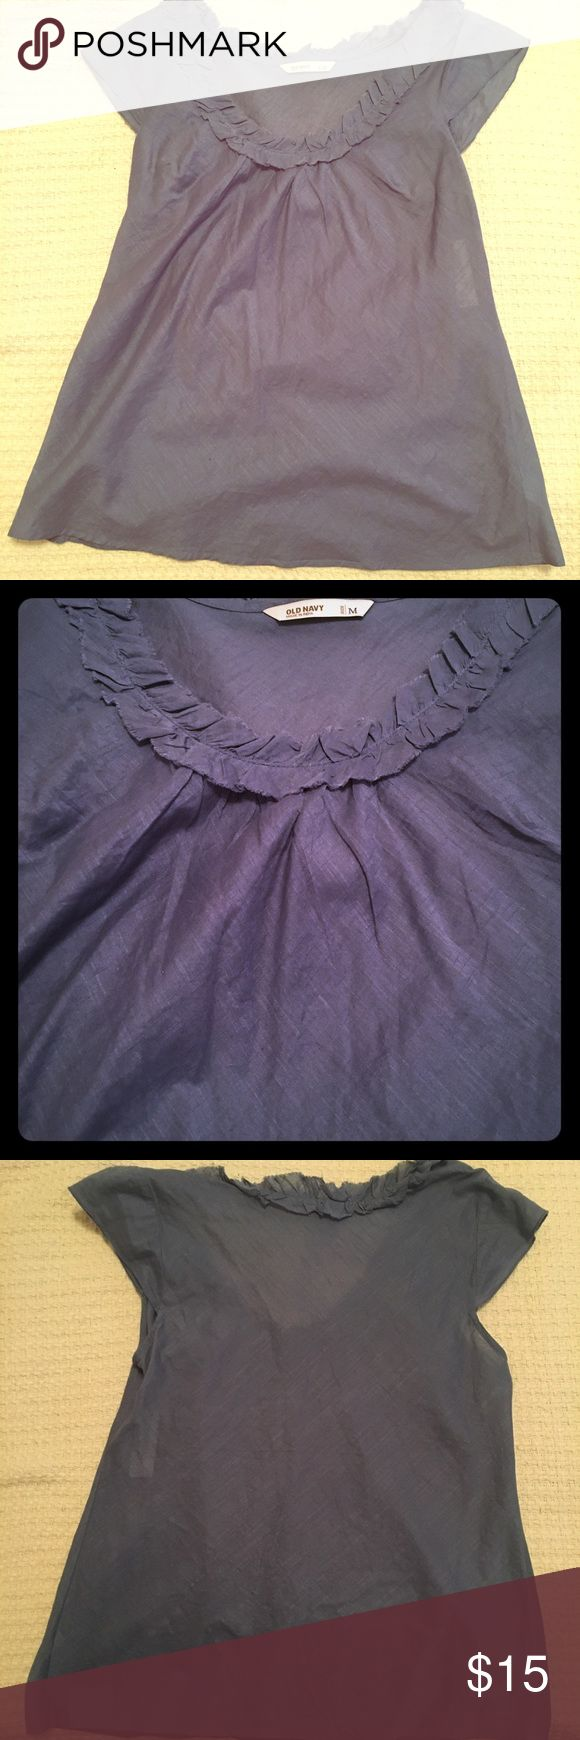 Semi sheet blue short sleeve top Old navy short sleeve top. Will need camisole underneath (or not 😉). NWT Old Navy Tops